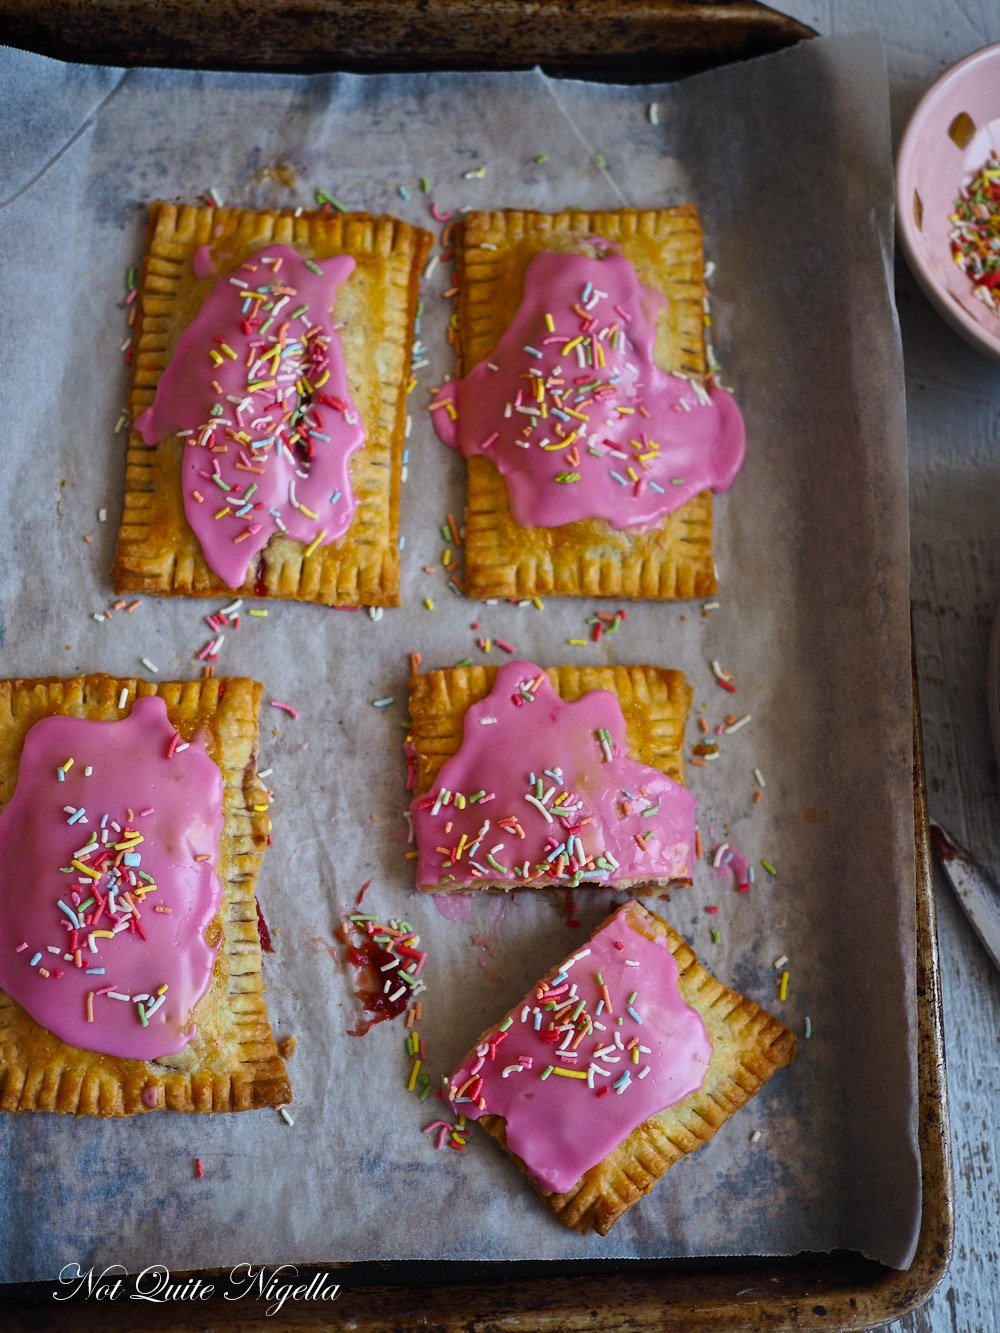 Home Made Pop Tarts From Scratch